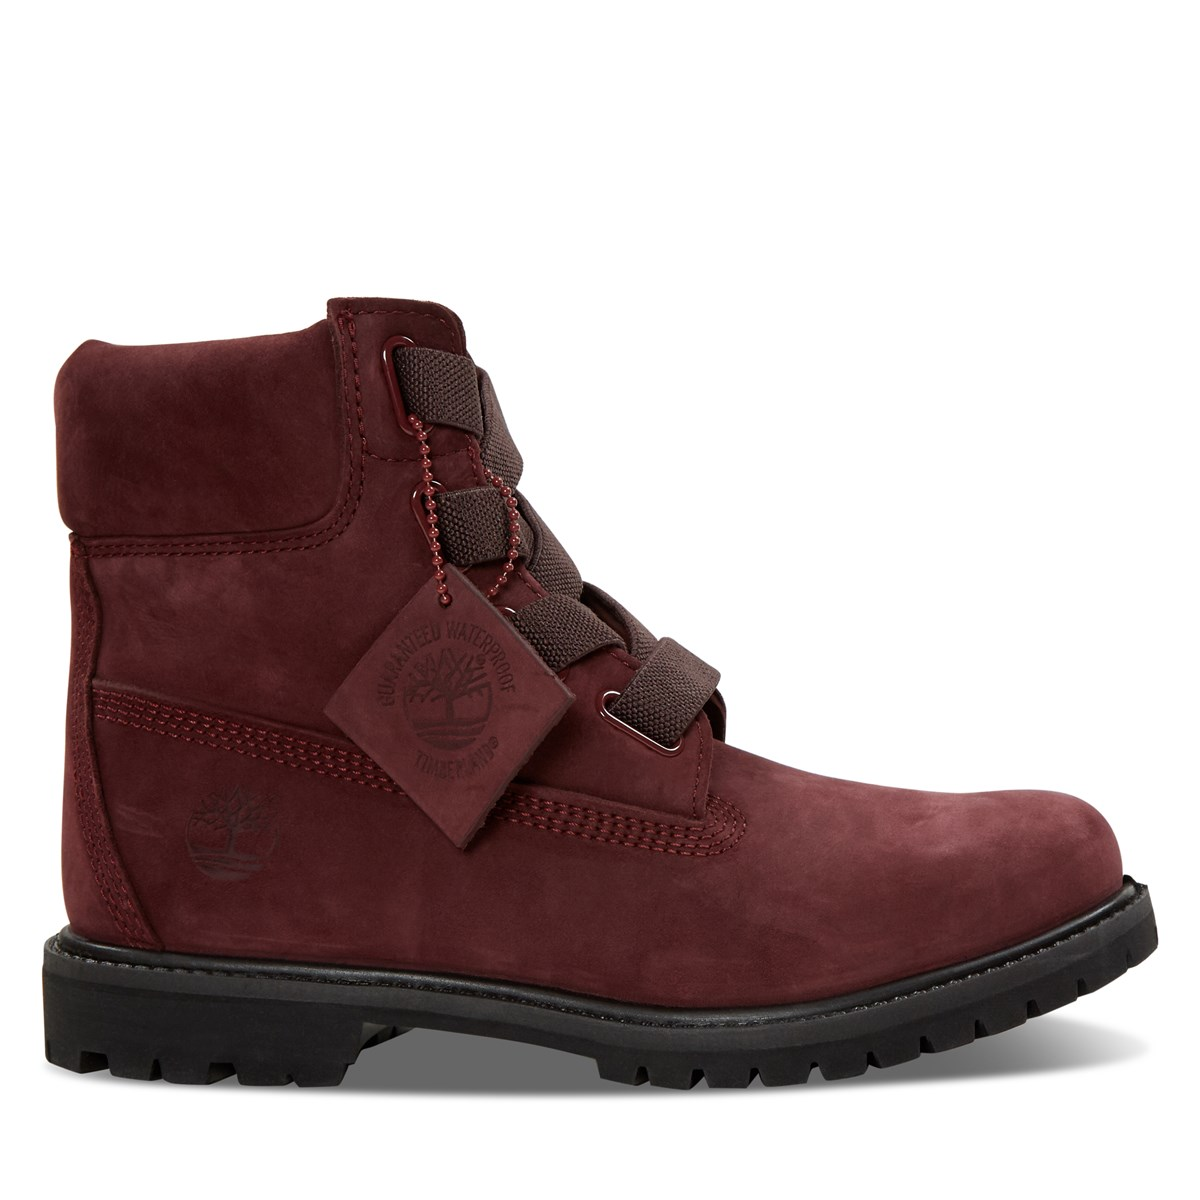 Women's 6-Inch Convenience Boots in Red